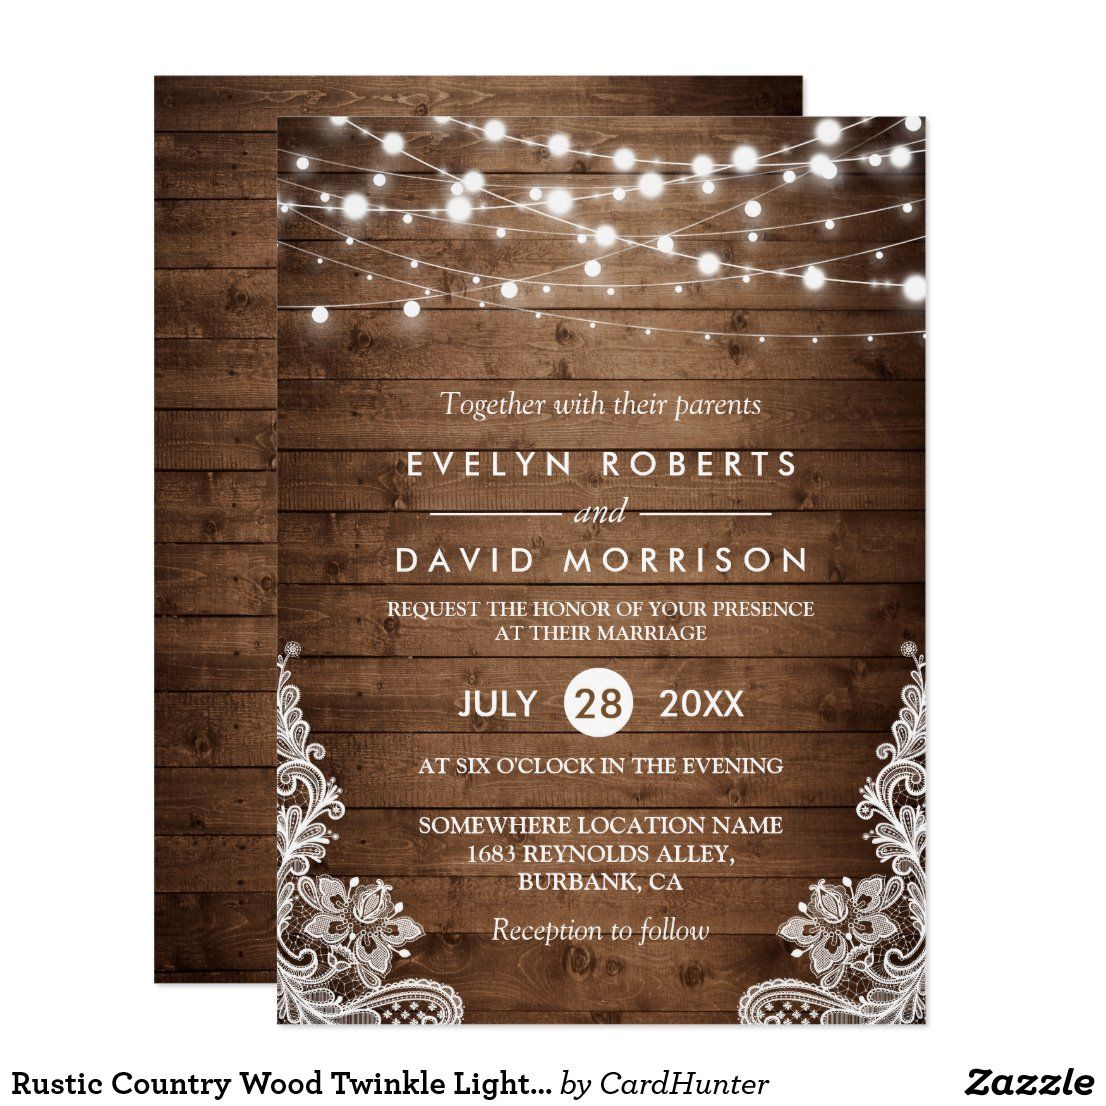 Rustic Country Wood Twinkle Lights Lace Wedding Invitation | Zazzle.com